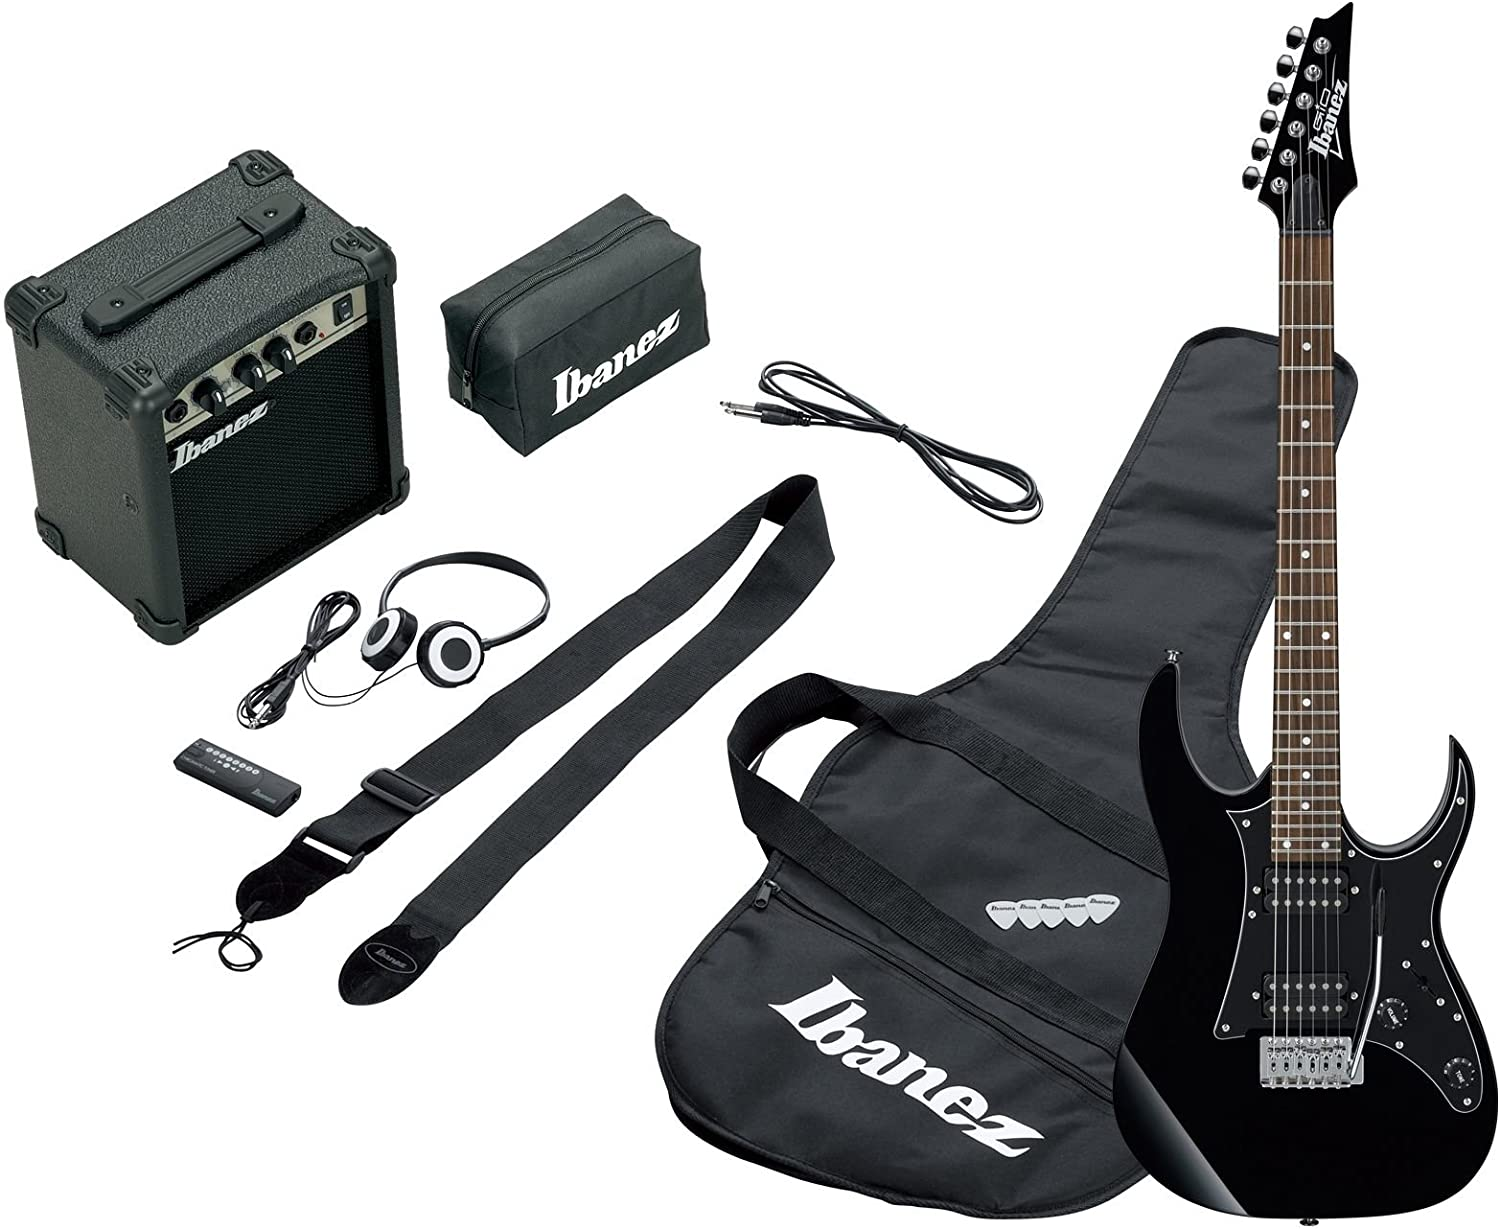 Ibanez IJRG200-BK - Guitarra eléctrica, color negro: Amazon.es ...